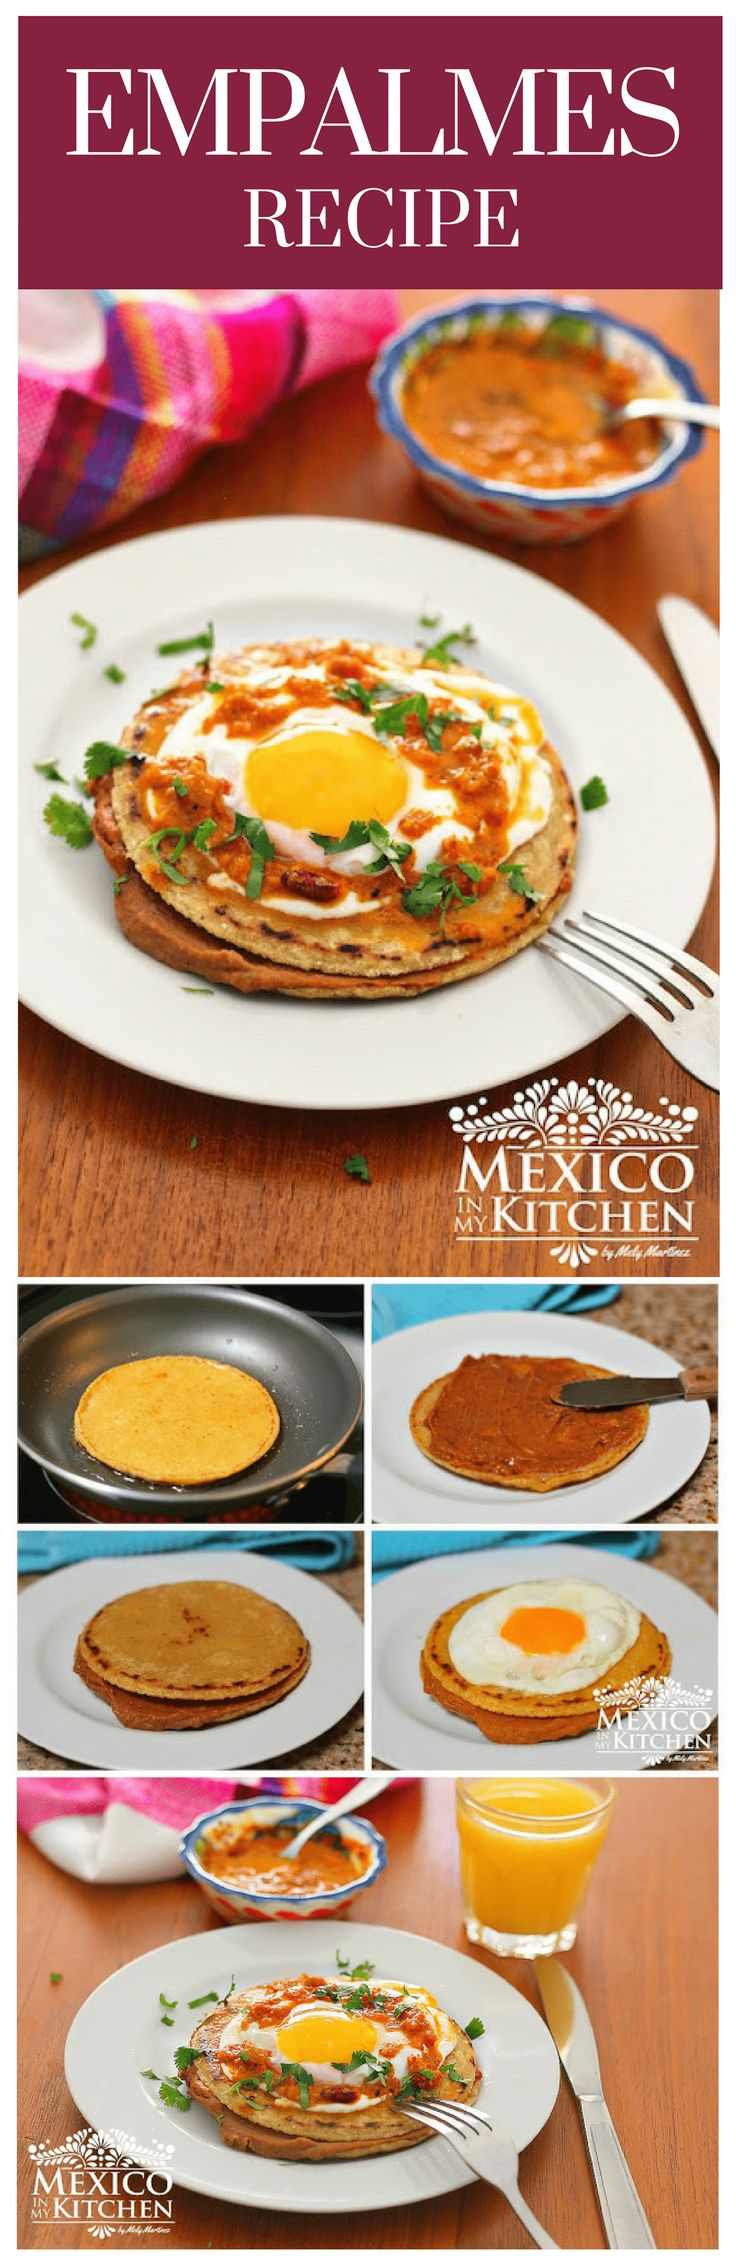 Here in Nuevo León, we have a unique dishes and customs. The key is to always try and use local and regional ingredients to prepare the recipes, as that gives them a particular authenticity and value. #mexicanrecipes  #mexicancuisine #mexicanfood #breakfast